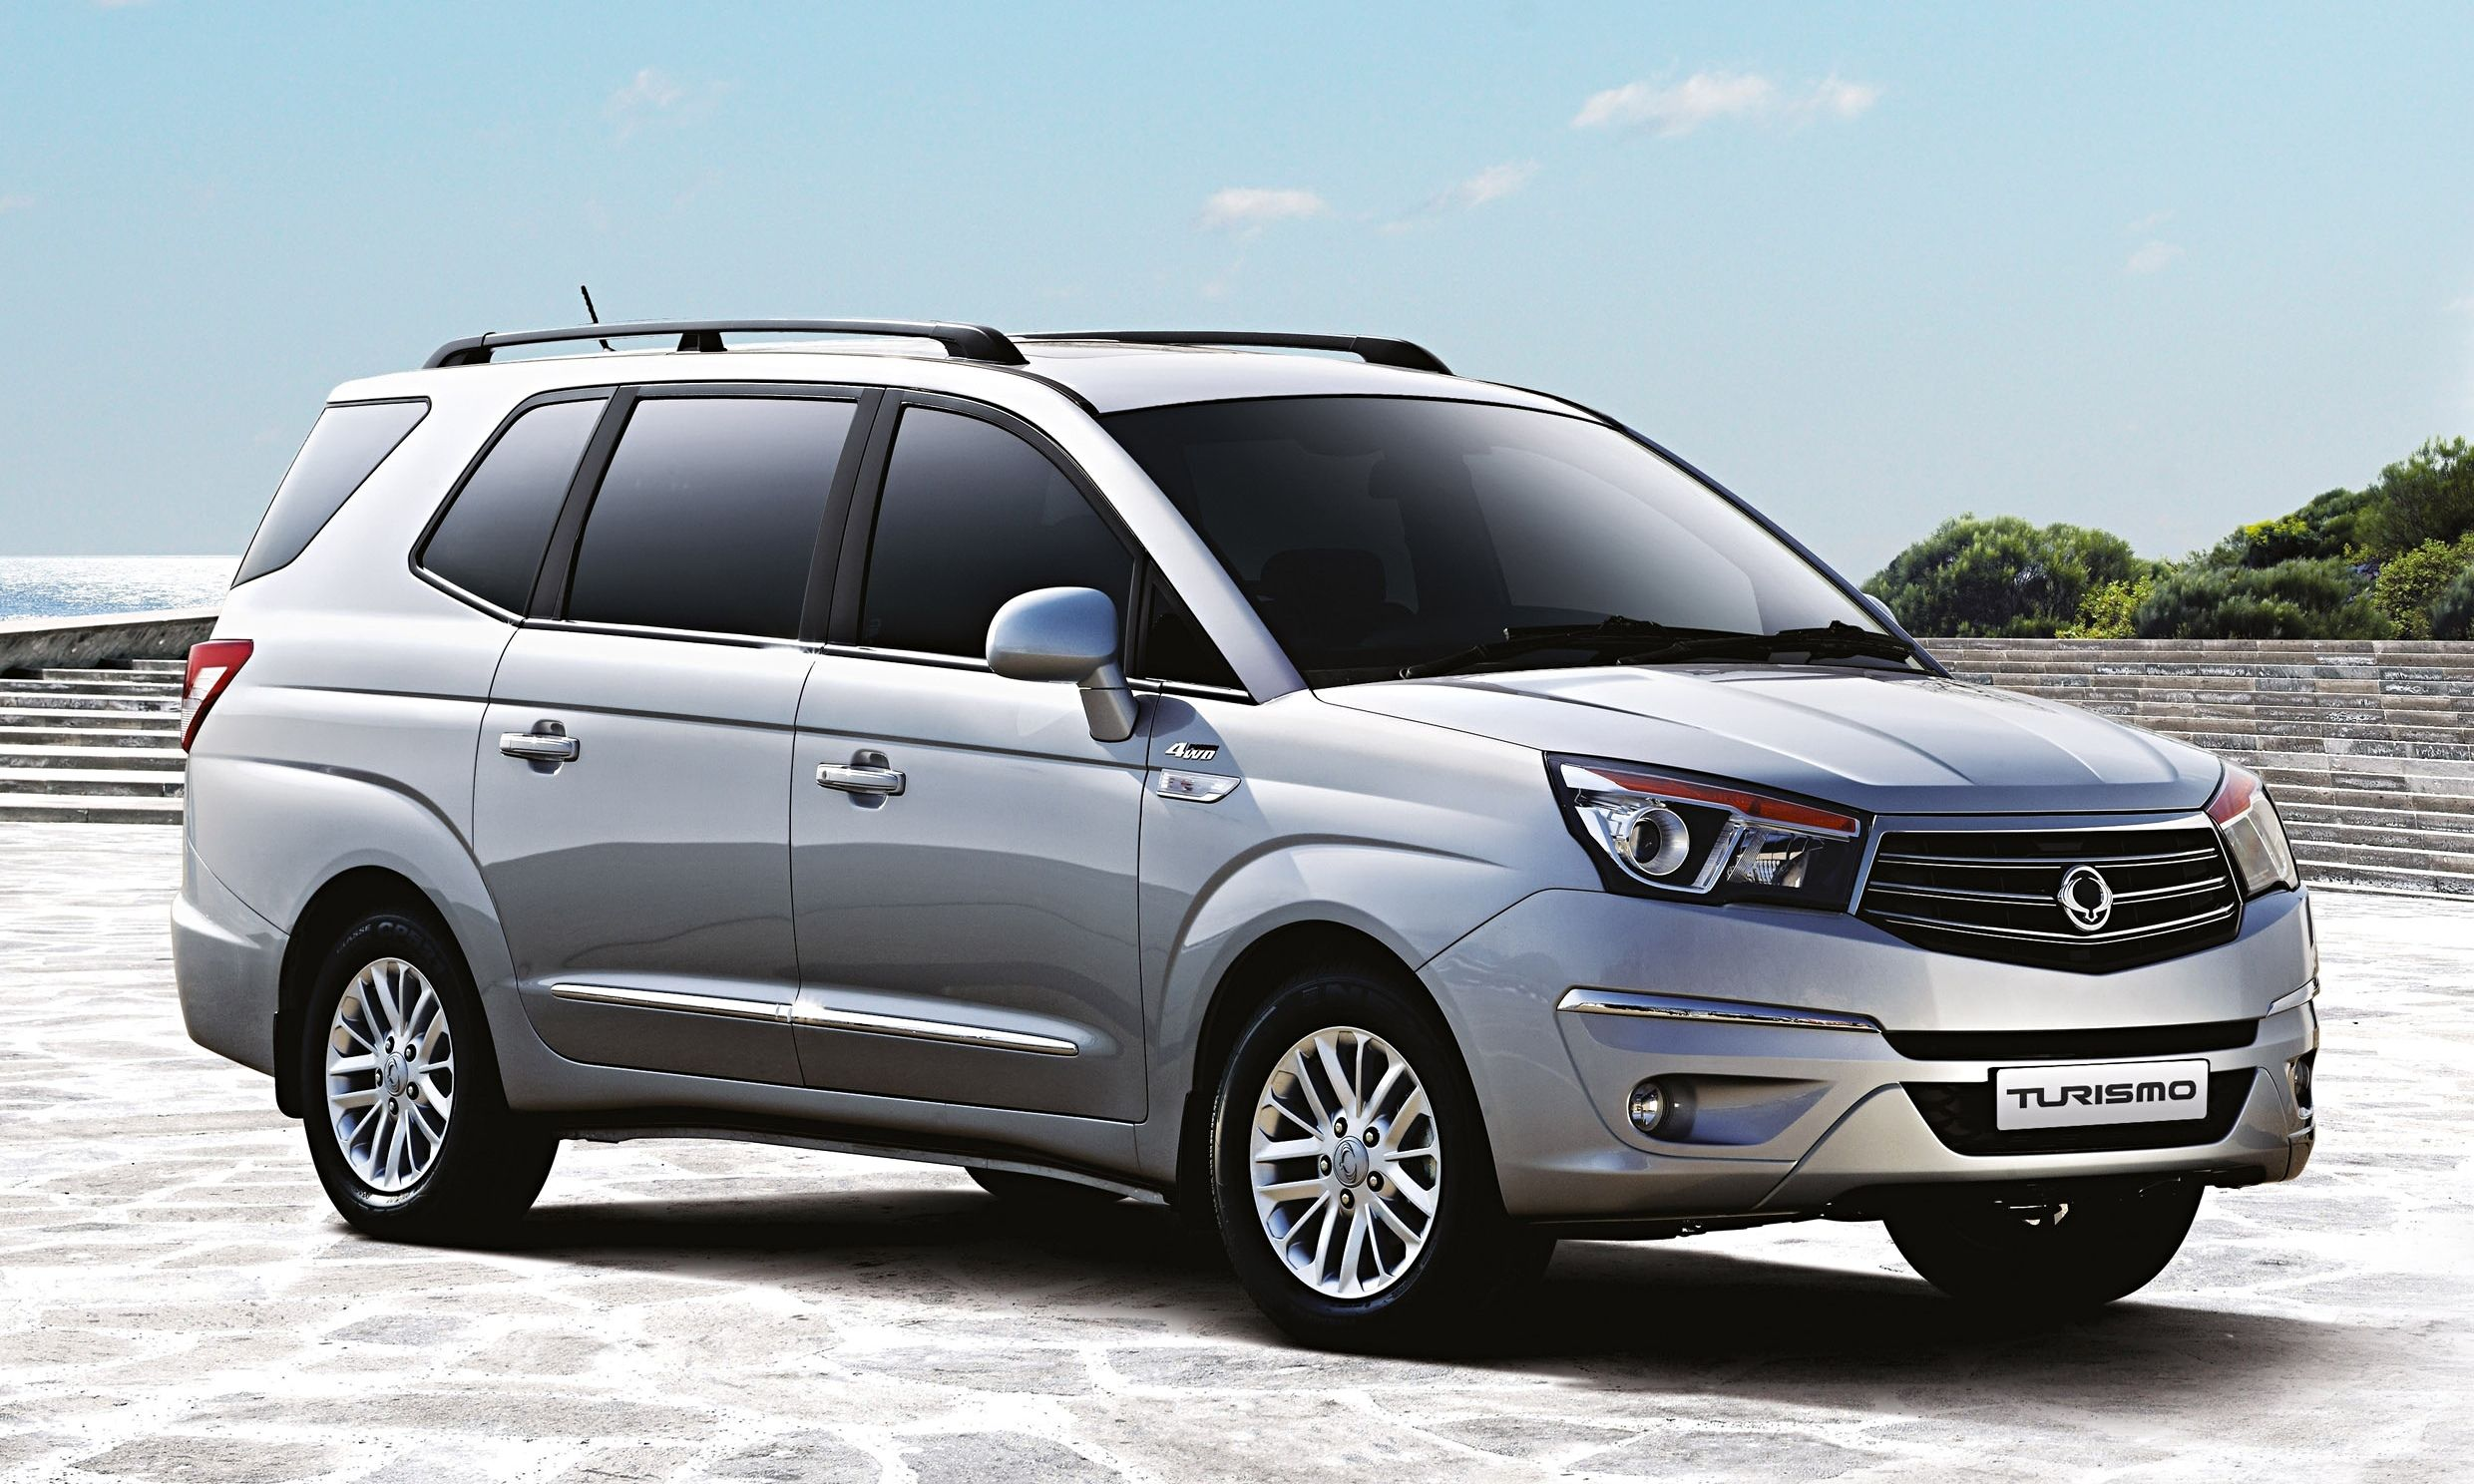 Ssangyong Turismo Car Review Car Latest Cars Car Prices